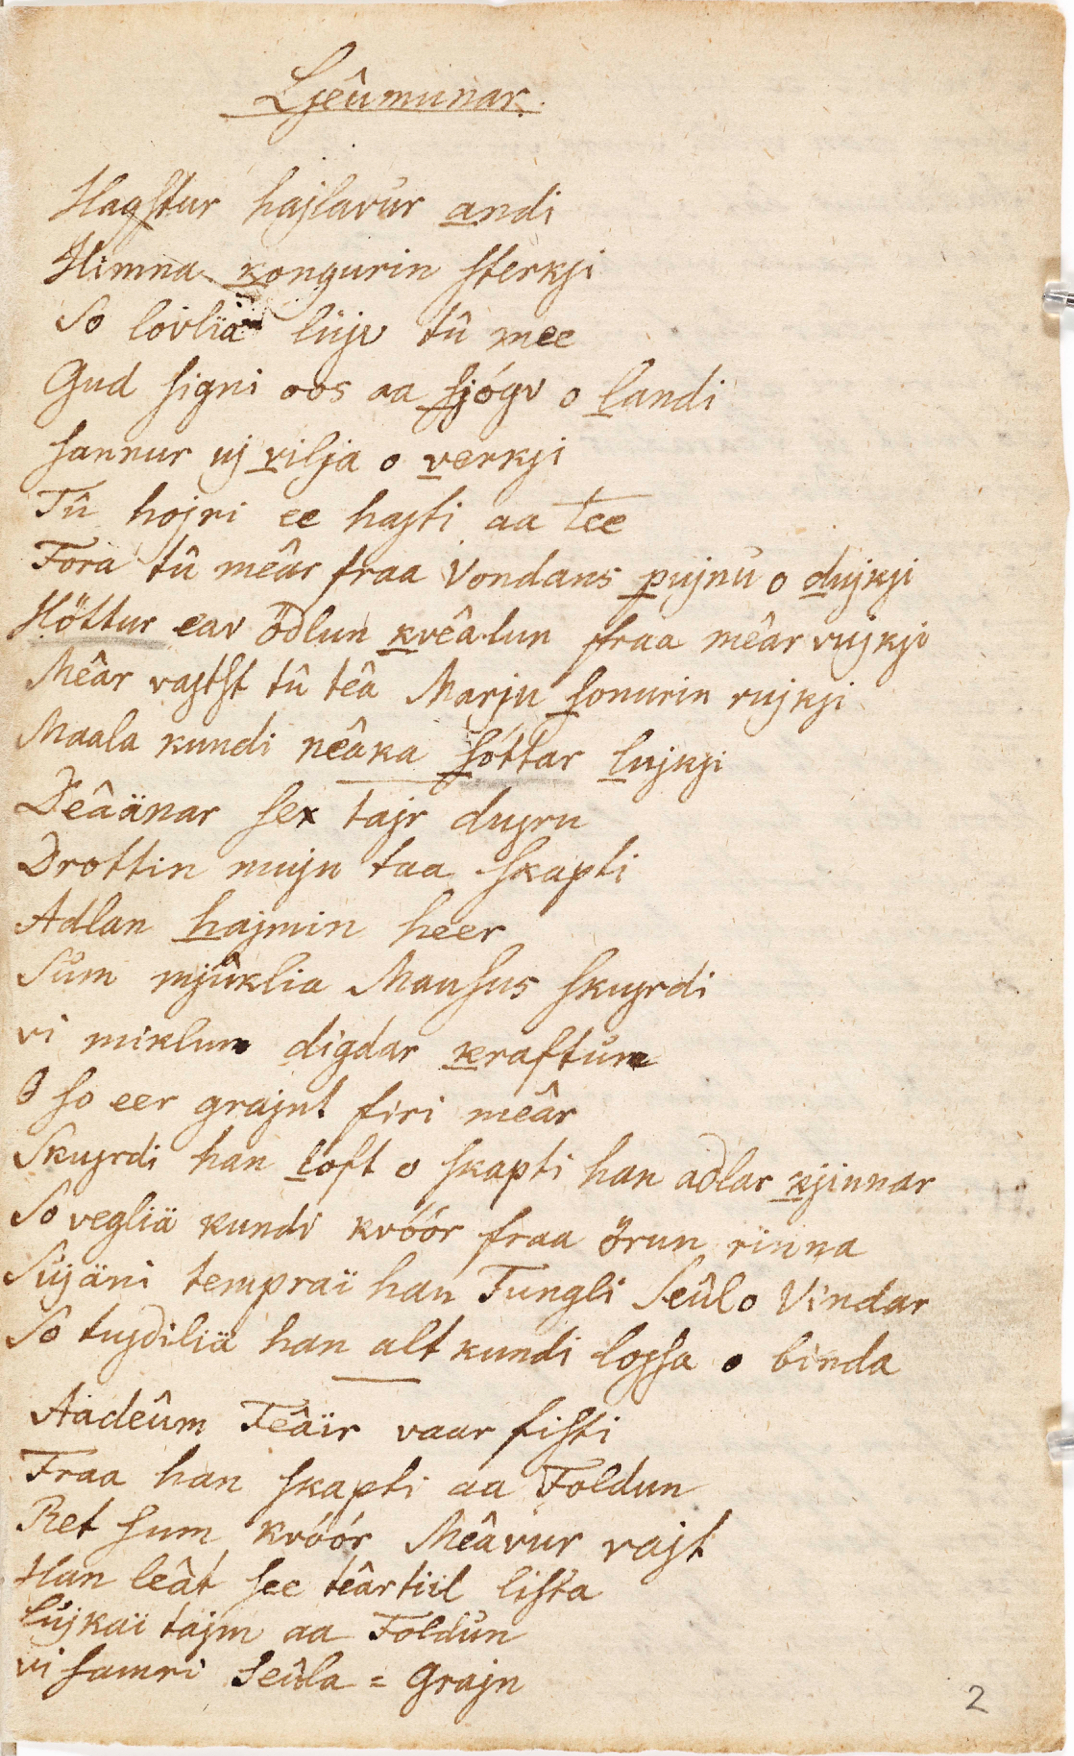 Read more about: Rask 113: A Ballad Manuscript in Two Parts